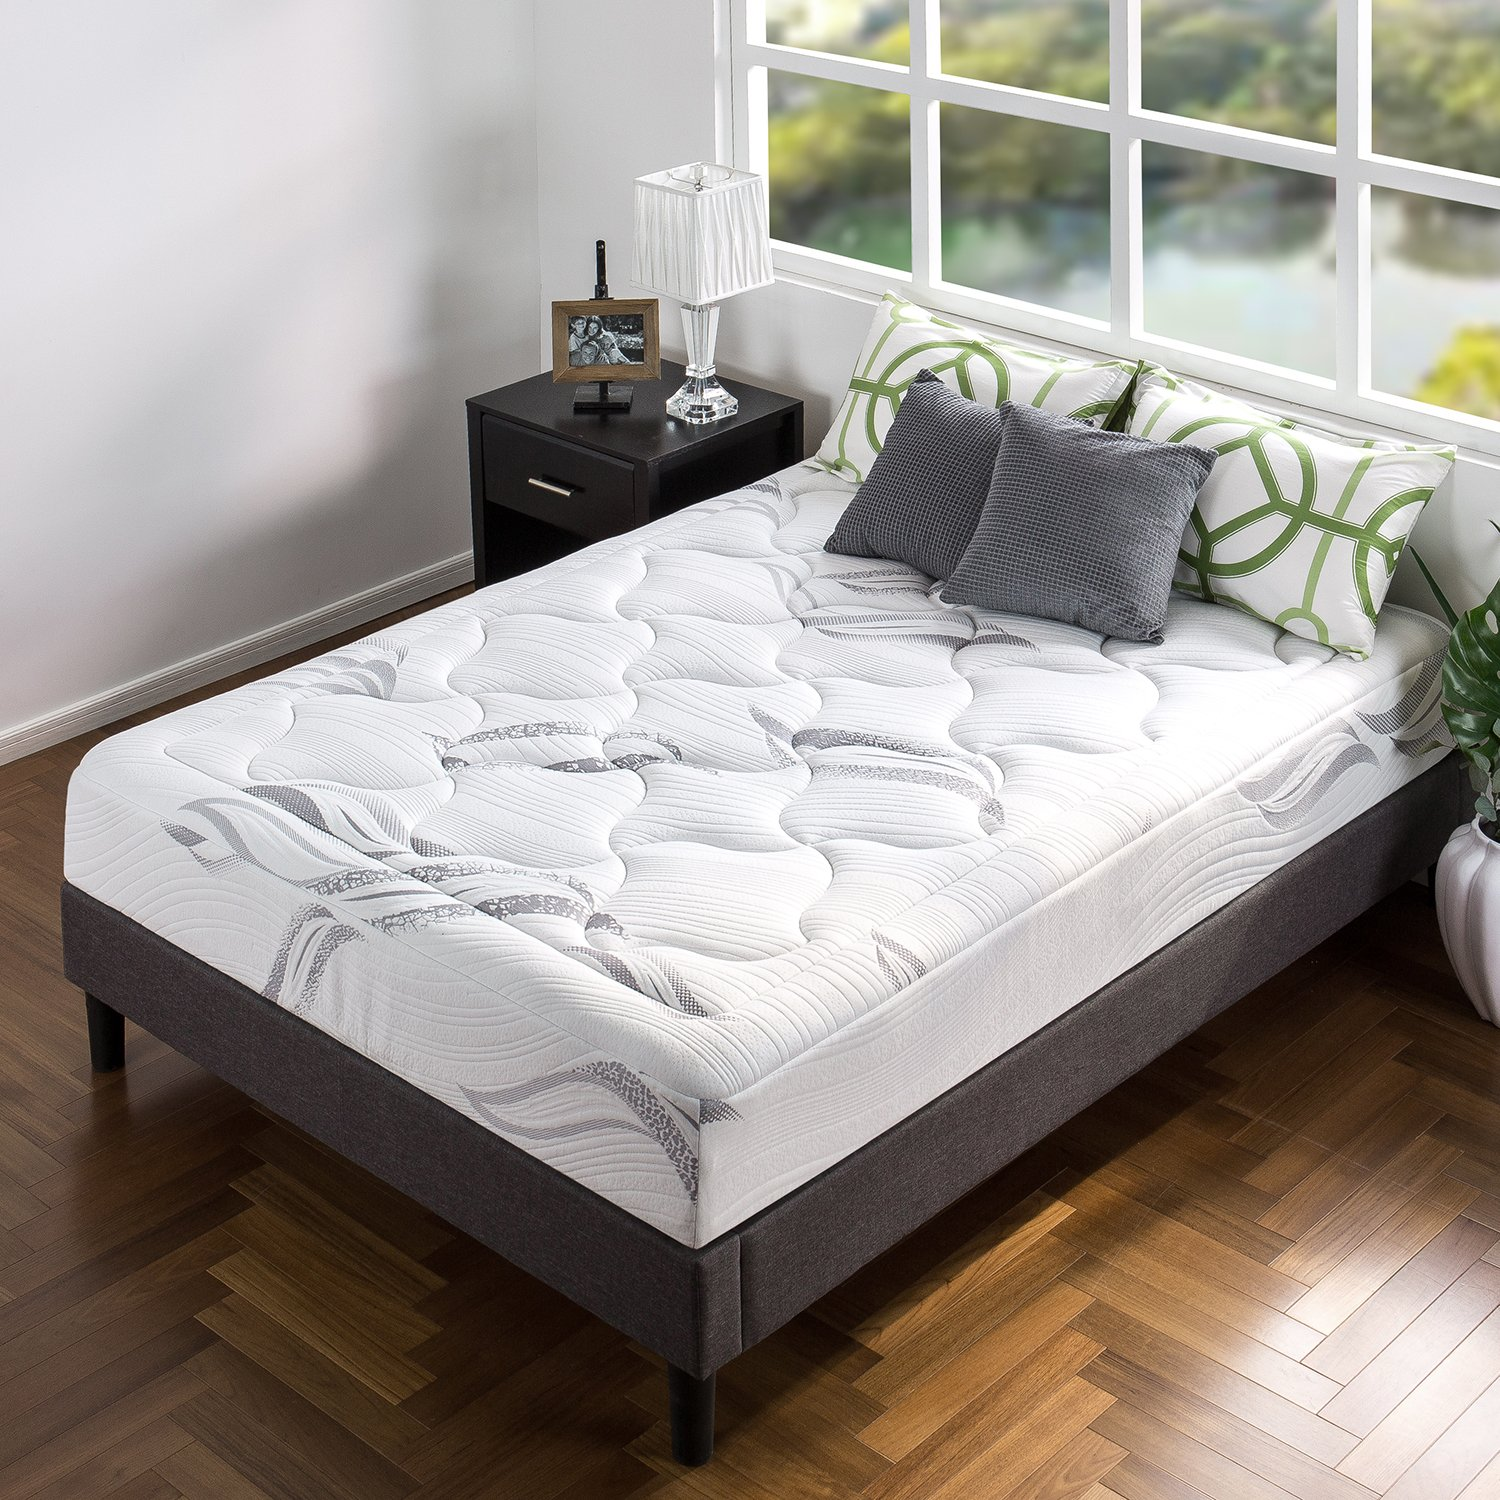 Amazon com  Zinus Memory Foam 10 Inch   Supreme   Cloud like Mattress  Queen   Kitchen   Dining. Amazon com  Zinus Memory Foam 10 Inch   Supreme   Cloud like